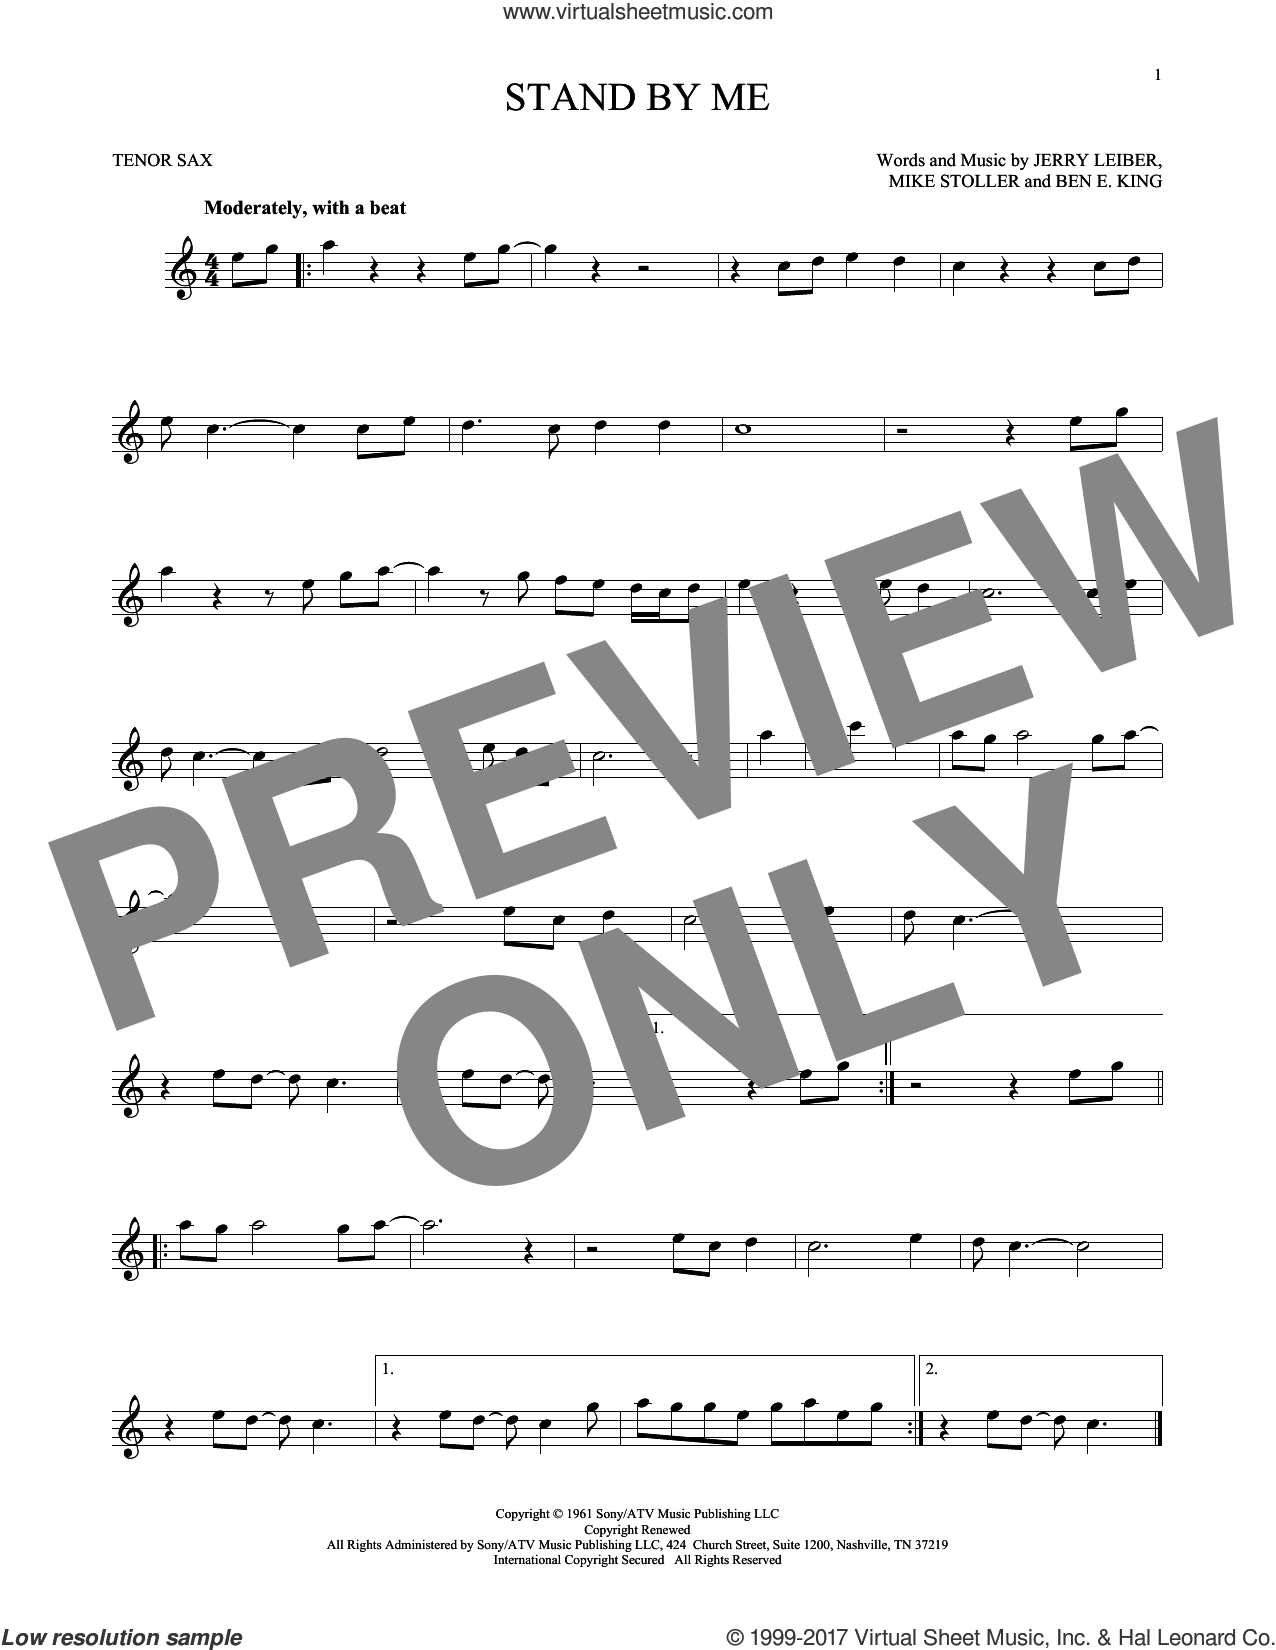 Stand By Me sheet music for tenor saxophone solo ( Sax) by Ben E. King and Mike Stoller, intermediate tenor saxophone ( Sax). Score Image Preview.